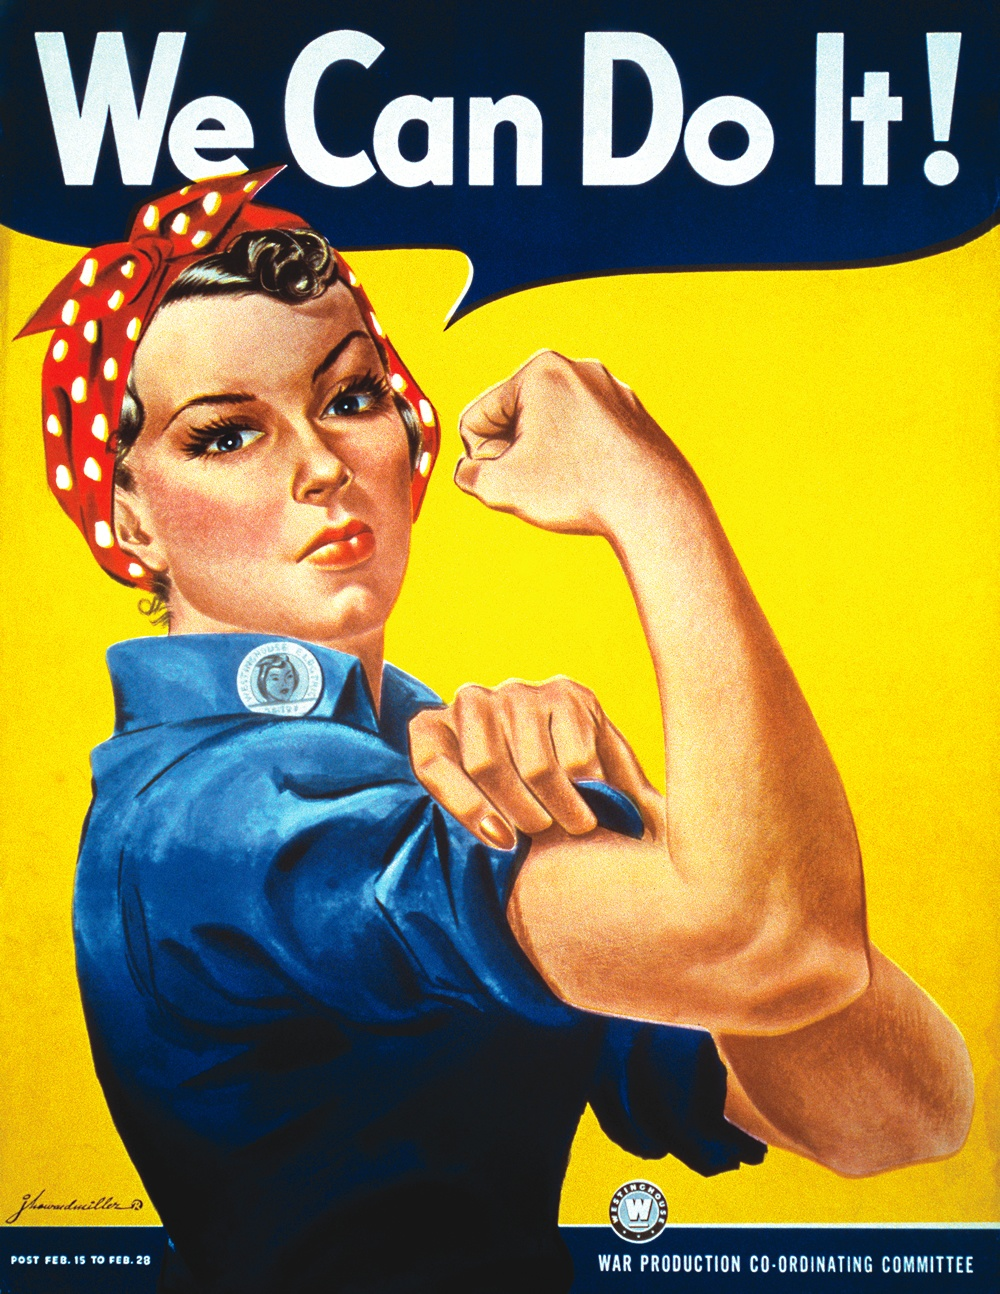 We_Can_Do_It!.jpg